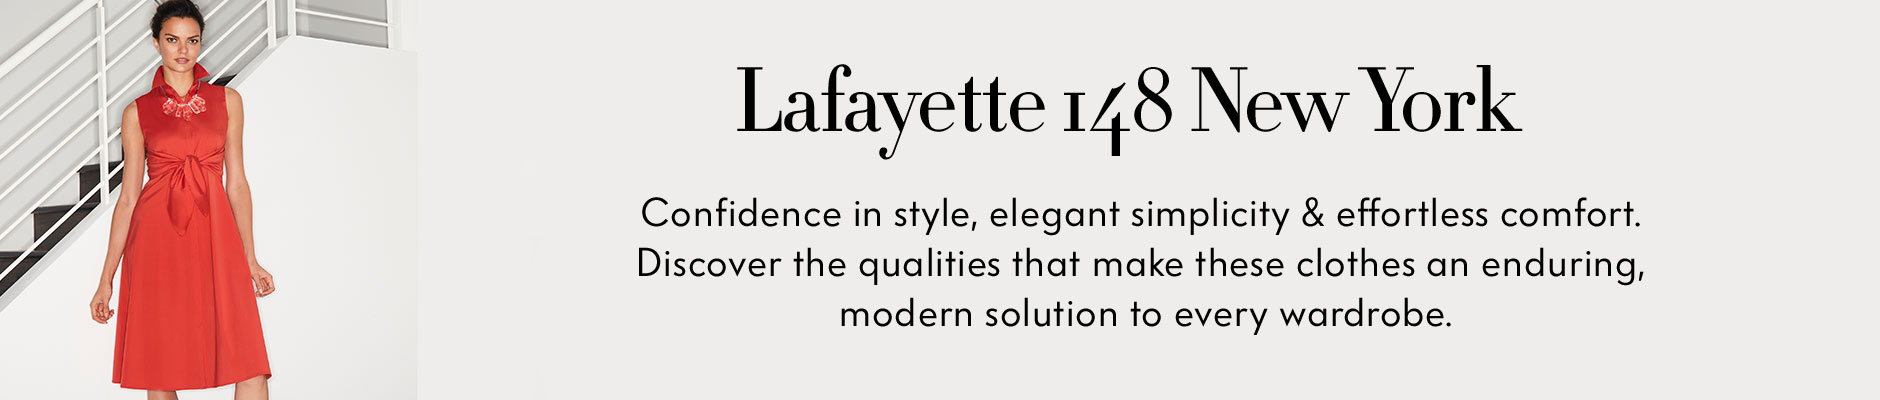 Lafayette 148 New York - Confidence in style, elegant simplicity & effortless comfort. Discover the qualities that make these clothes an enduring, modern solution to every wardrobe.